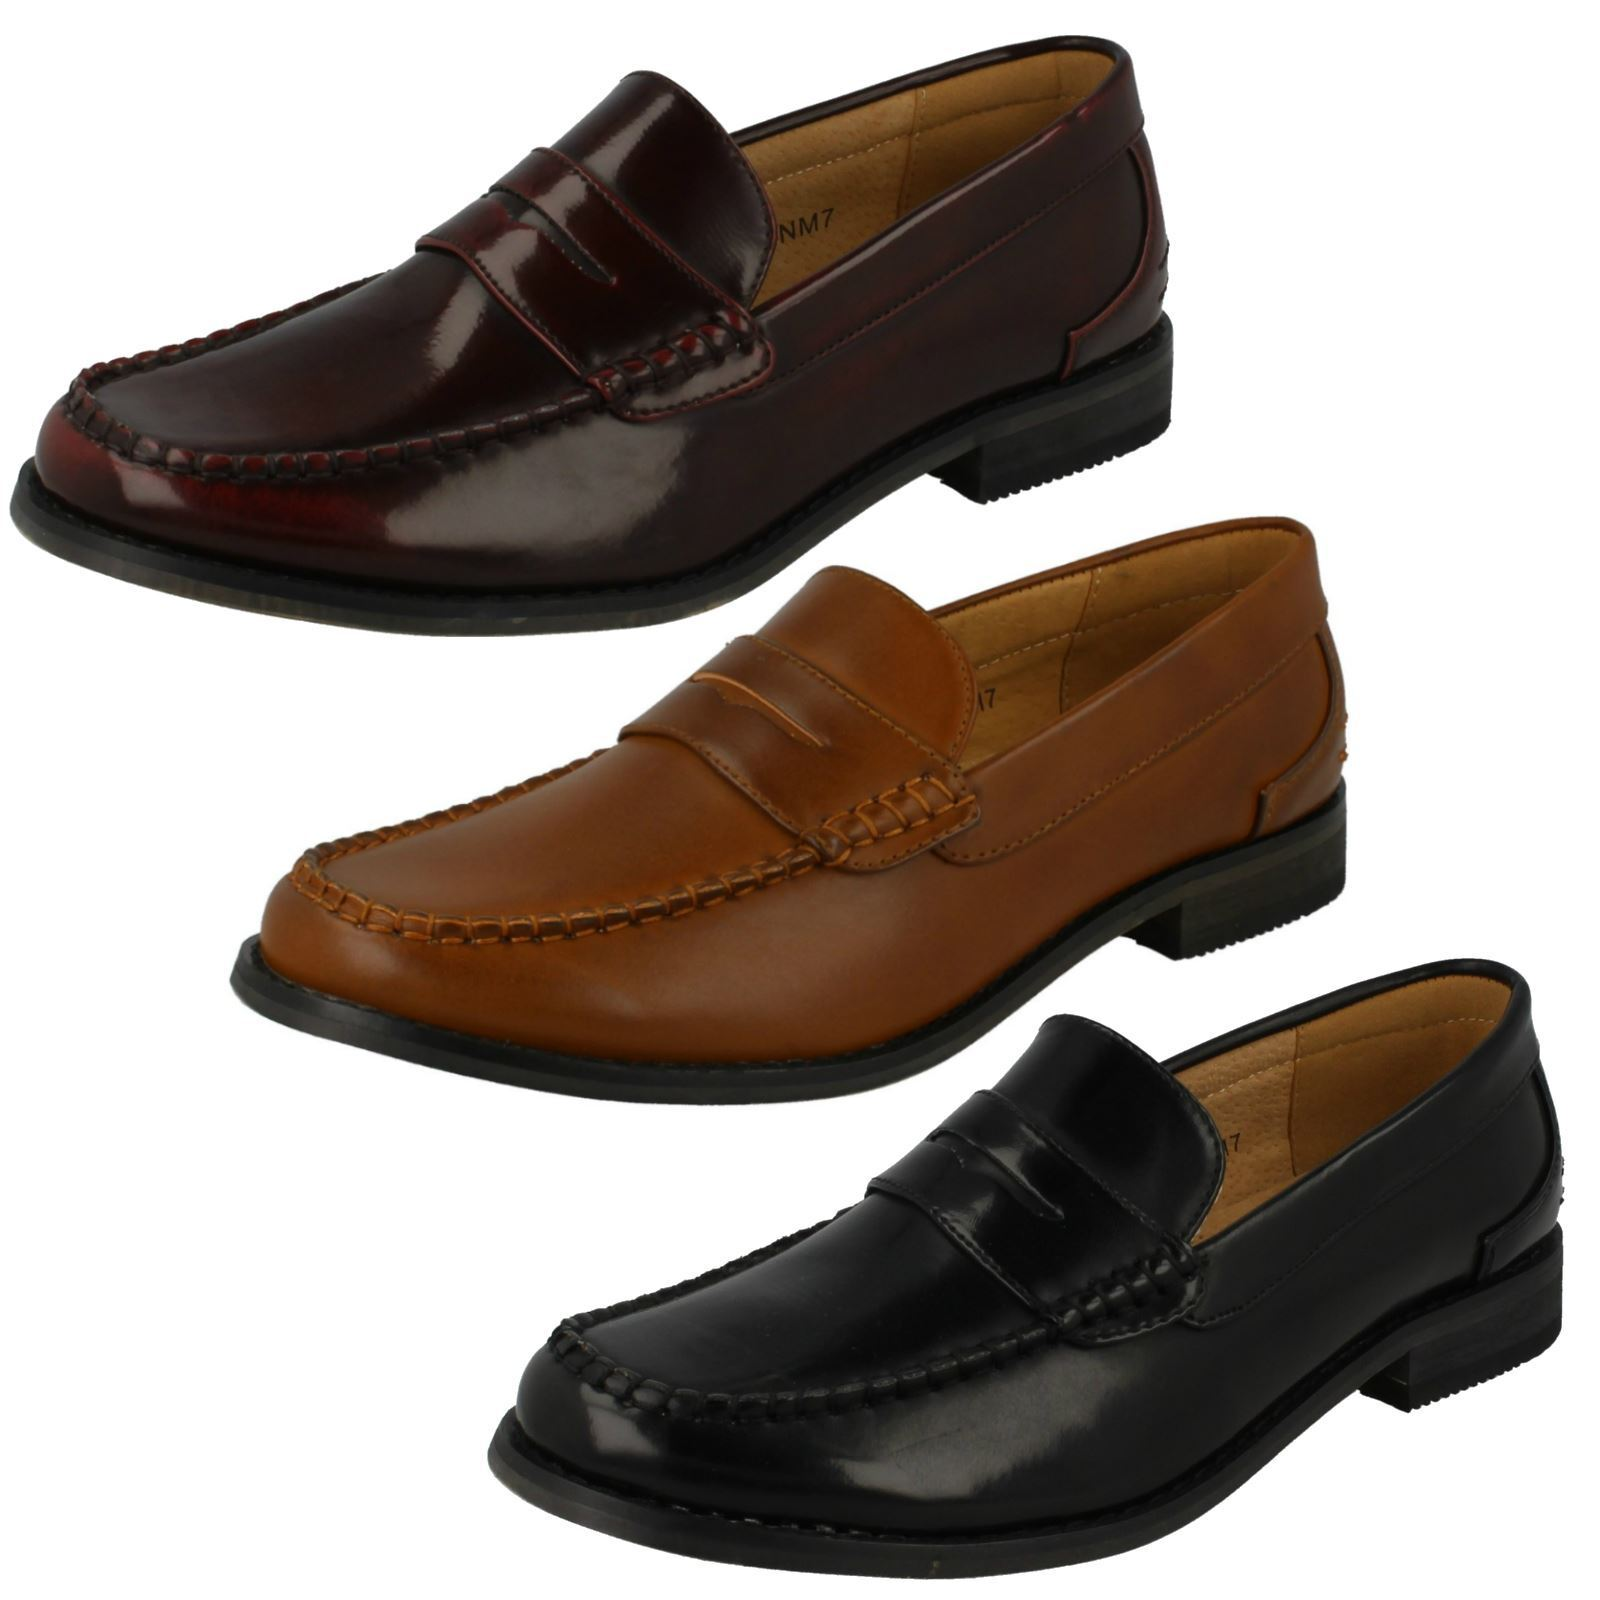 Mens 'Maverick' Formal Loafer Style shoes - A1R118